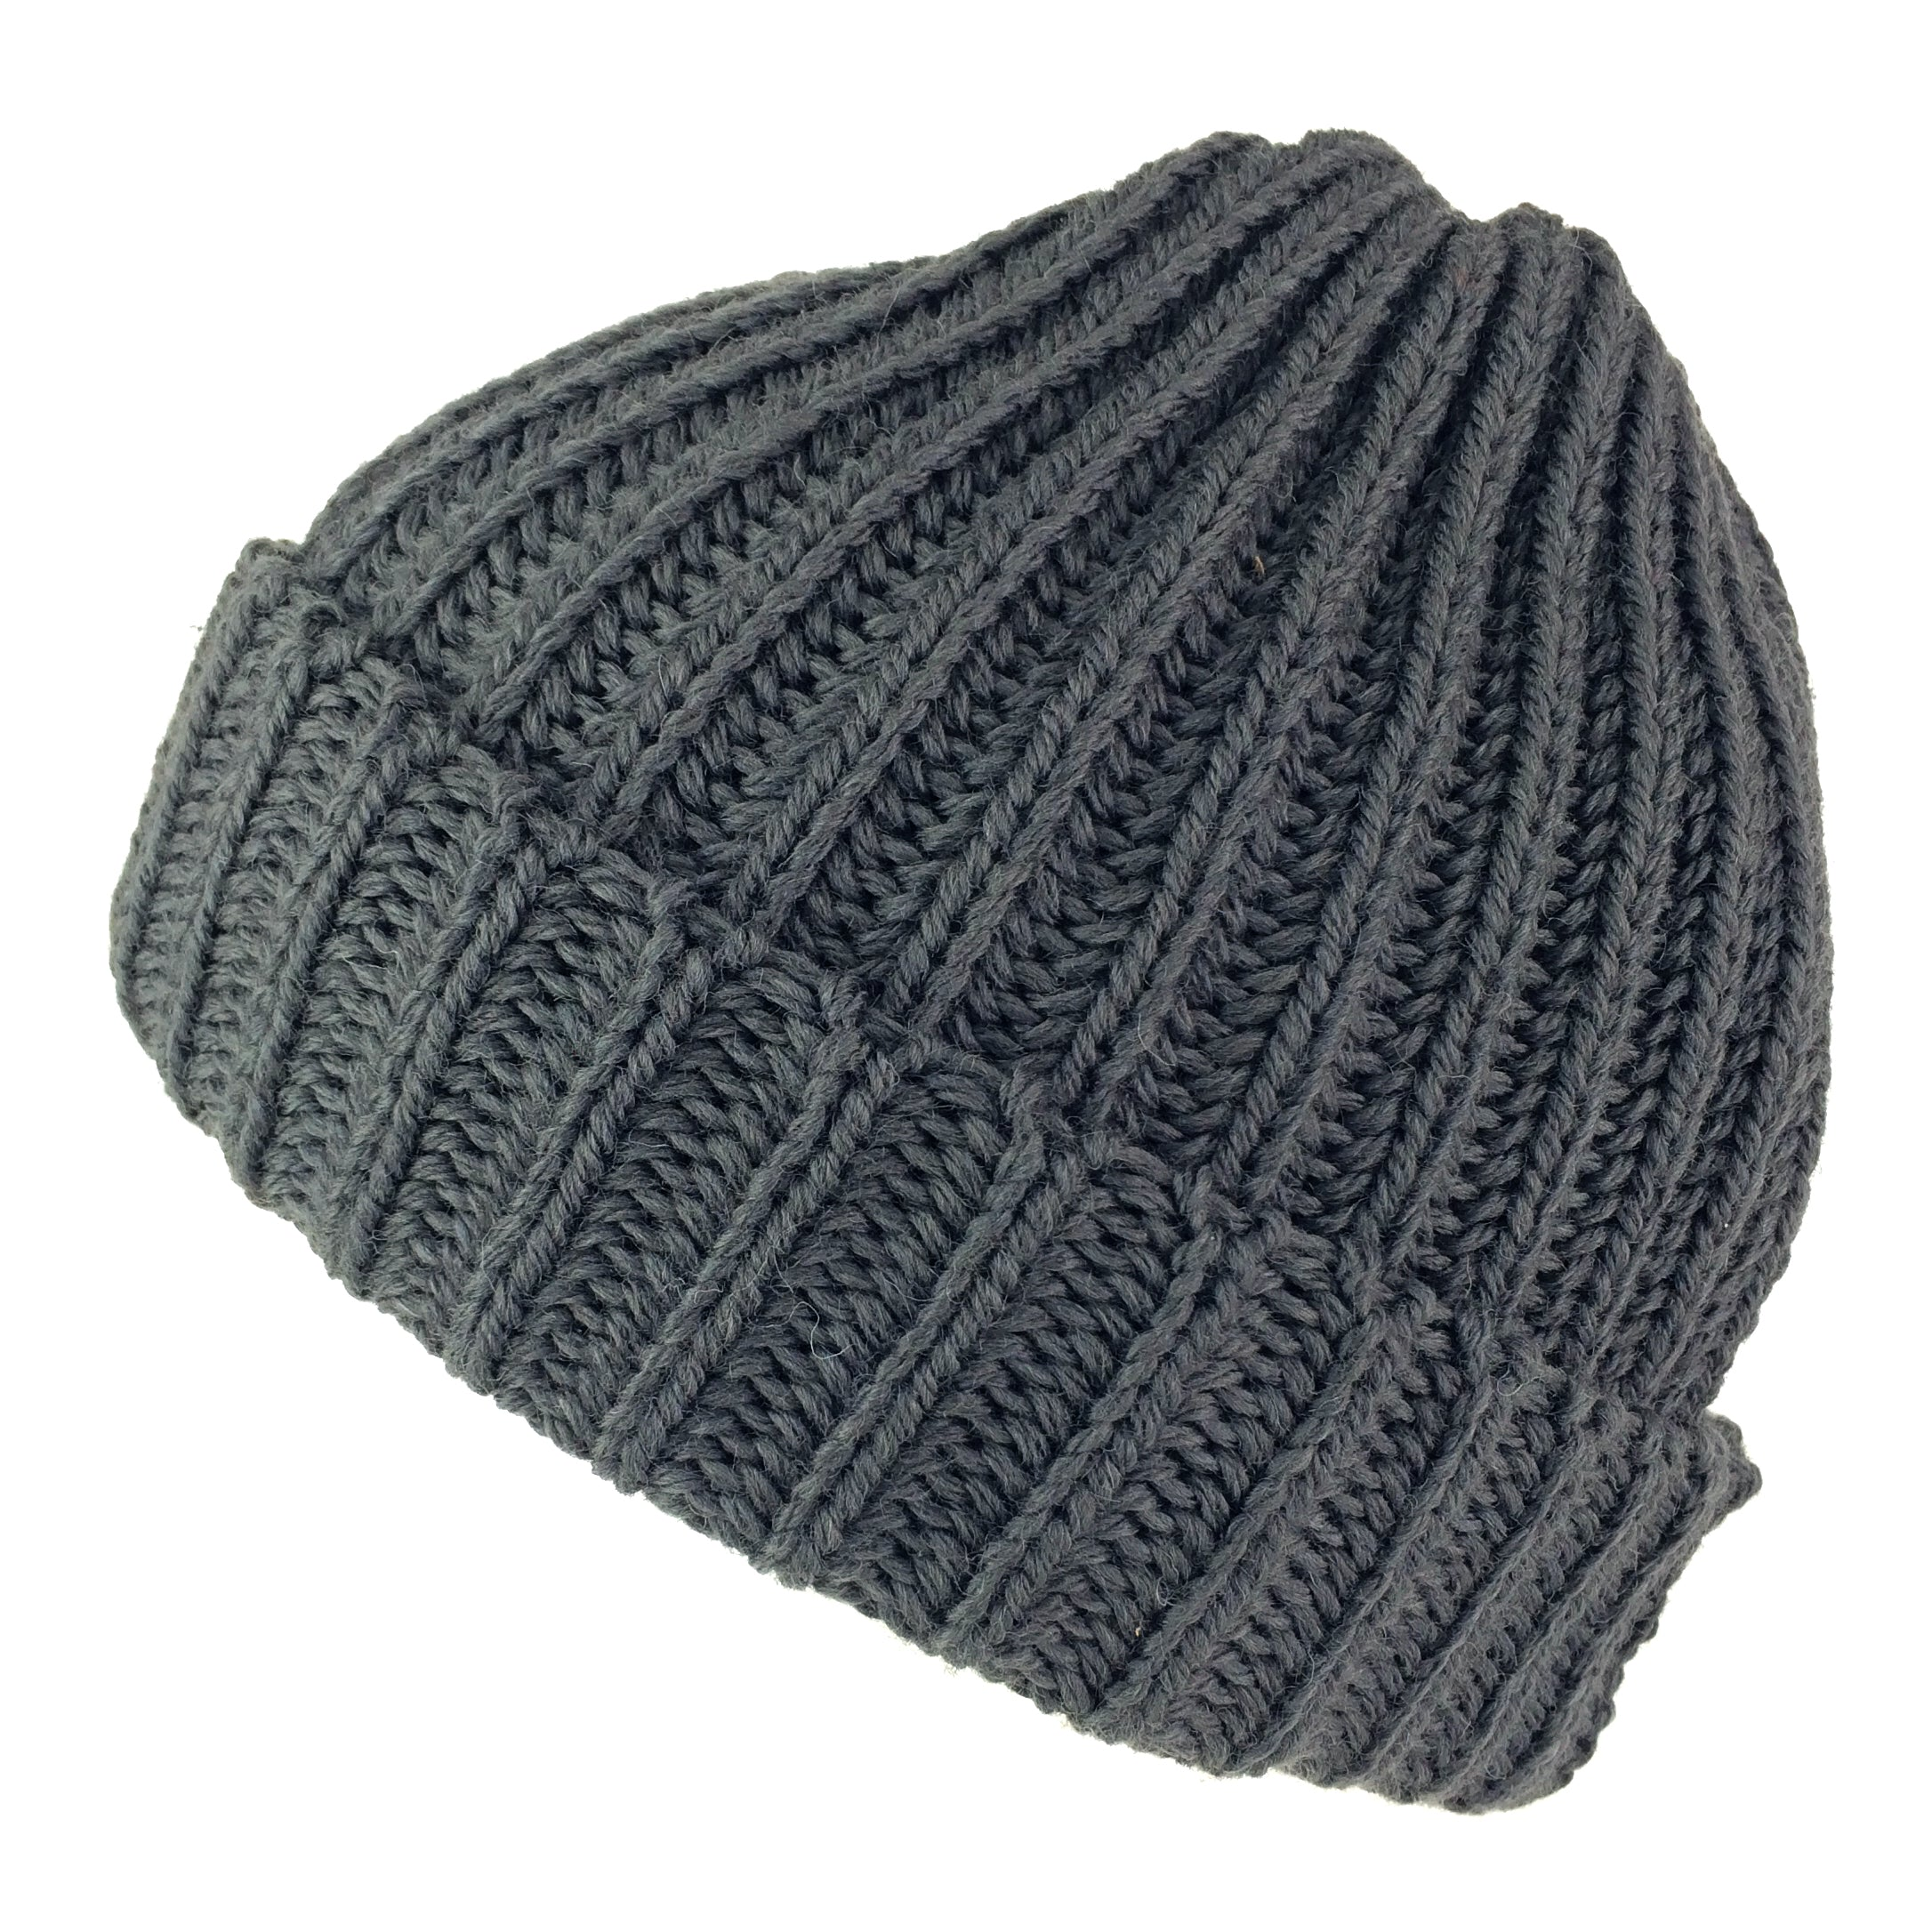 b36769a122dfe Wool Beanie Highland 2000 Fisherman s Hat Merino Wool Chunky Knit - Black